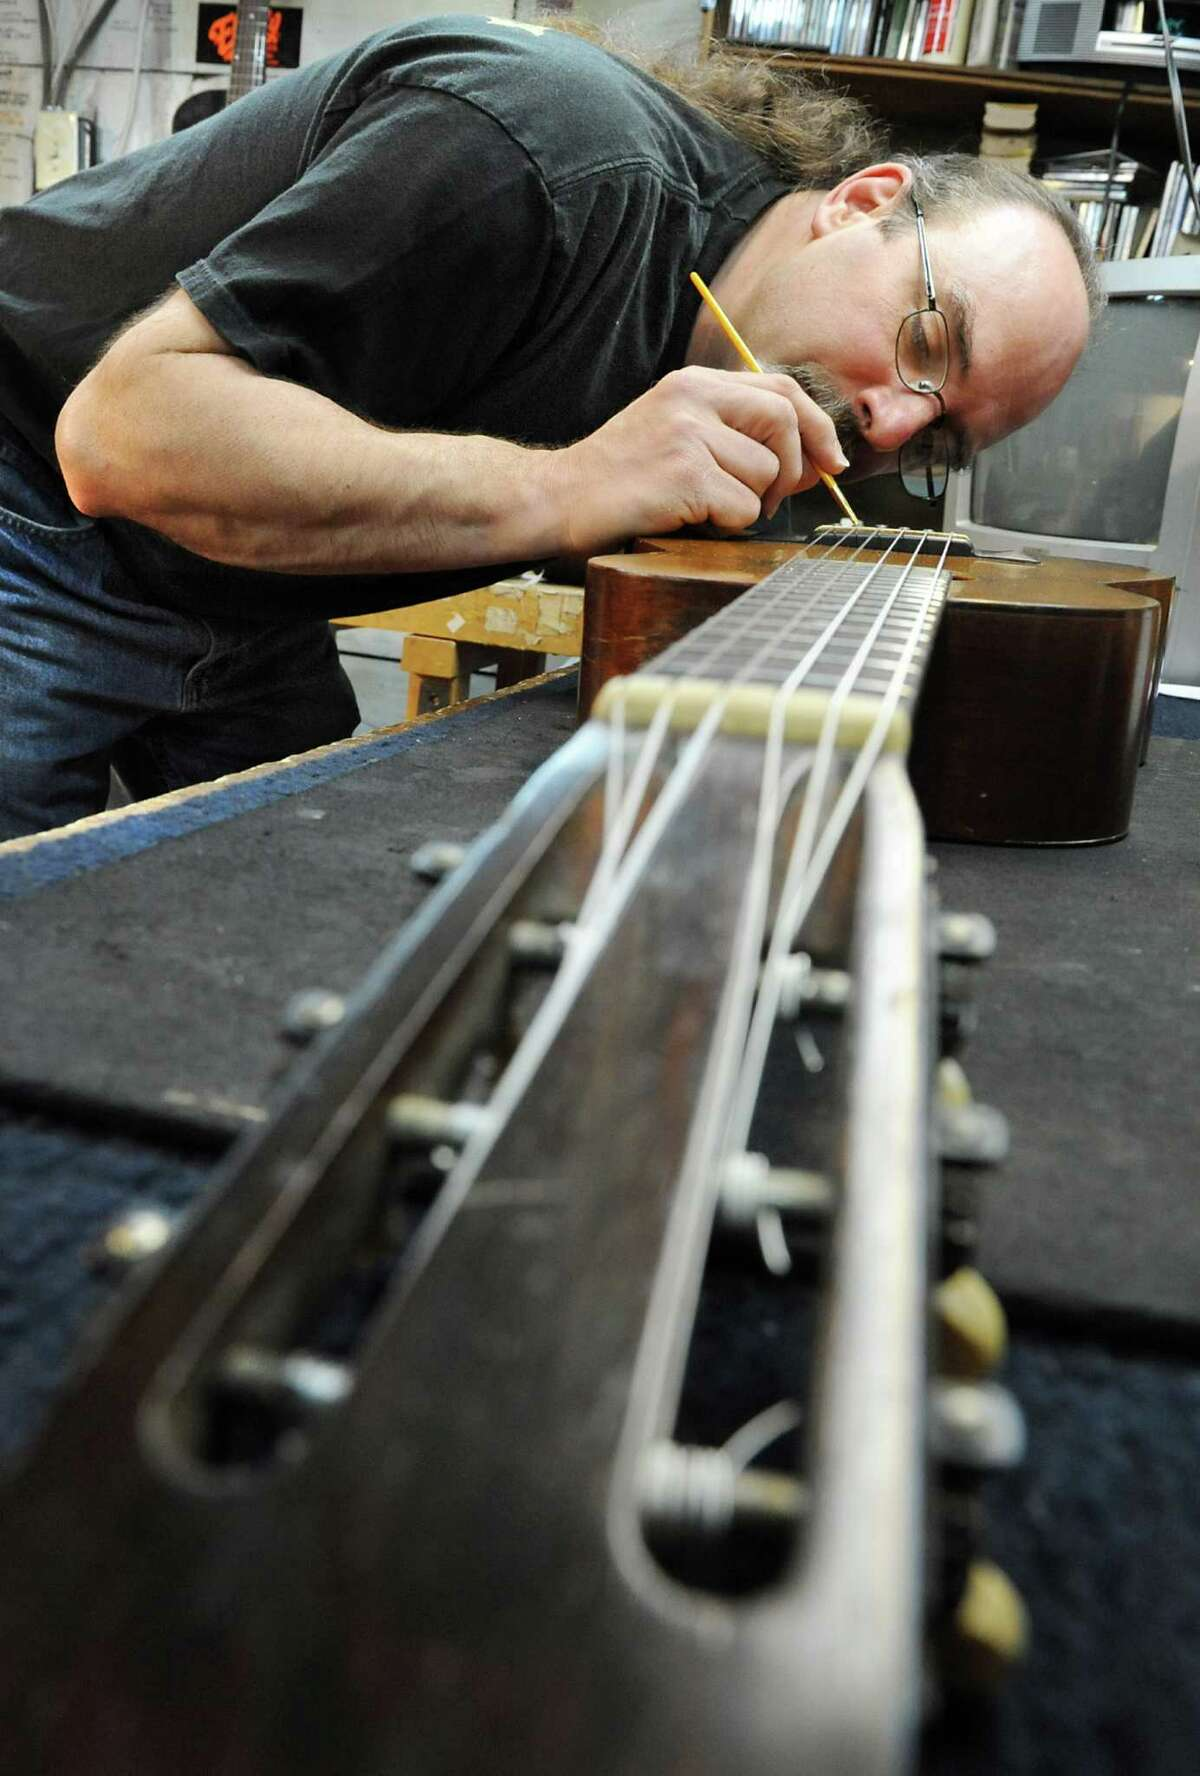 Steven Kovacik finishes shellac touch up on a 1919 Martin guitar as he works in his basement shop on Thursday, March 28, 2013 in Scotia, N.Y. (Lori Van Buren / Times Union)